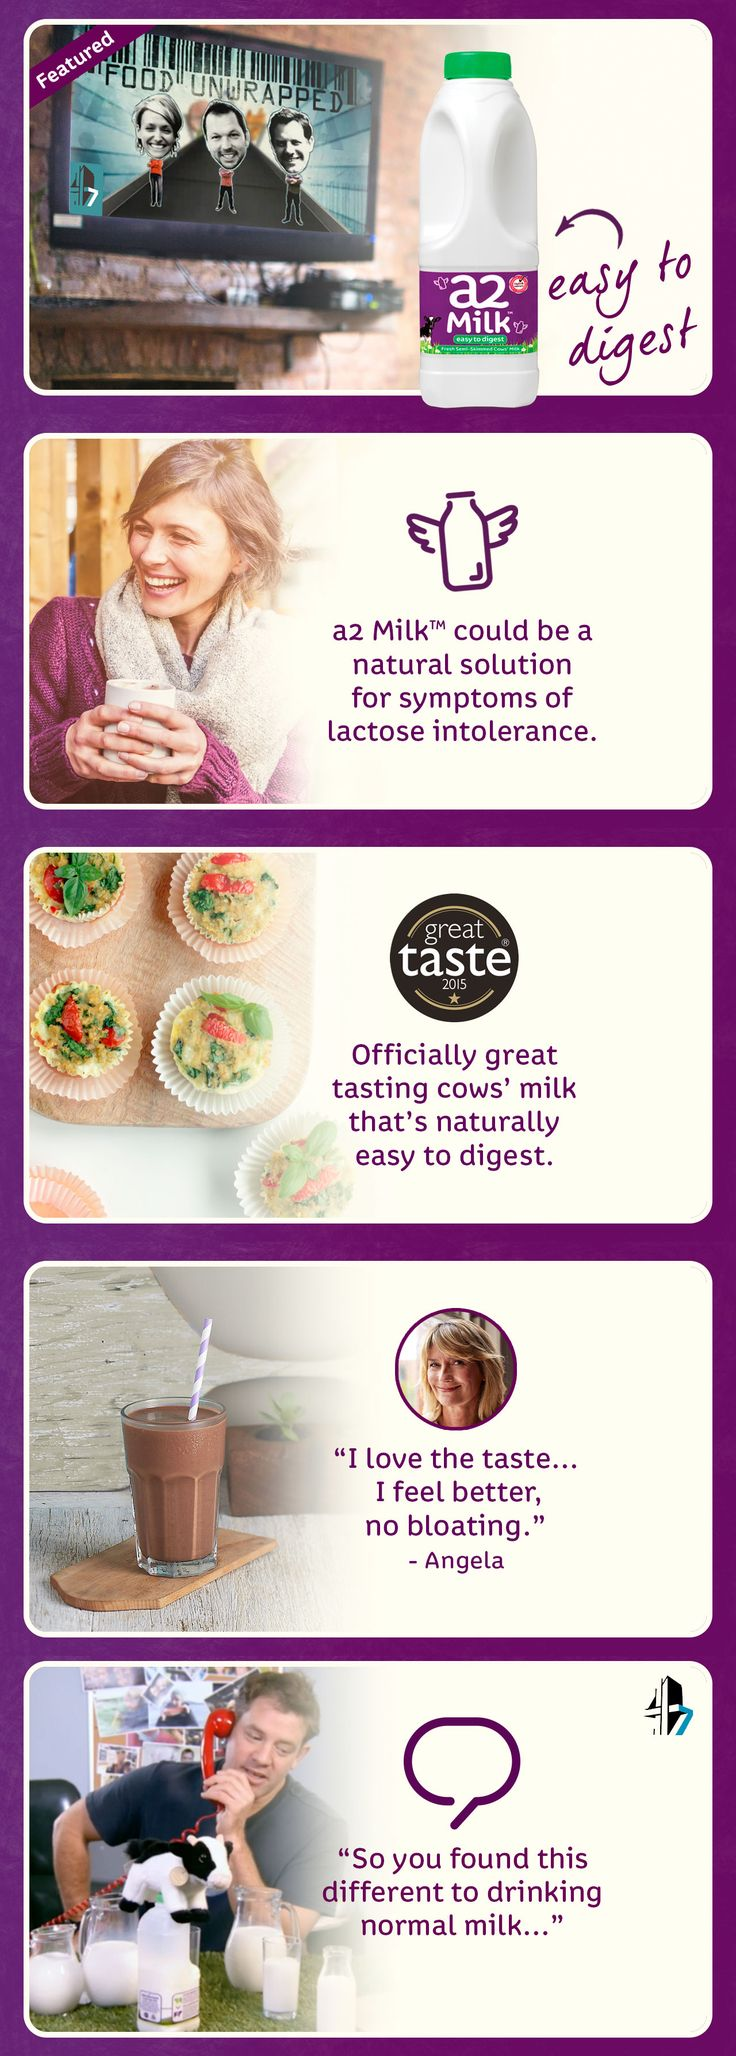 Channel 4's Food Unwrapped discover a natural cows' milk that doesn't trigger symptoms of lactose intolerance in many.